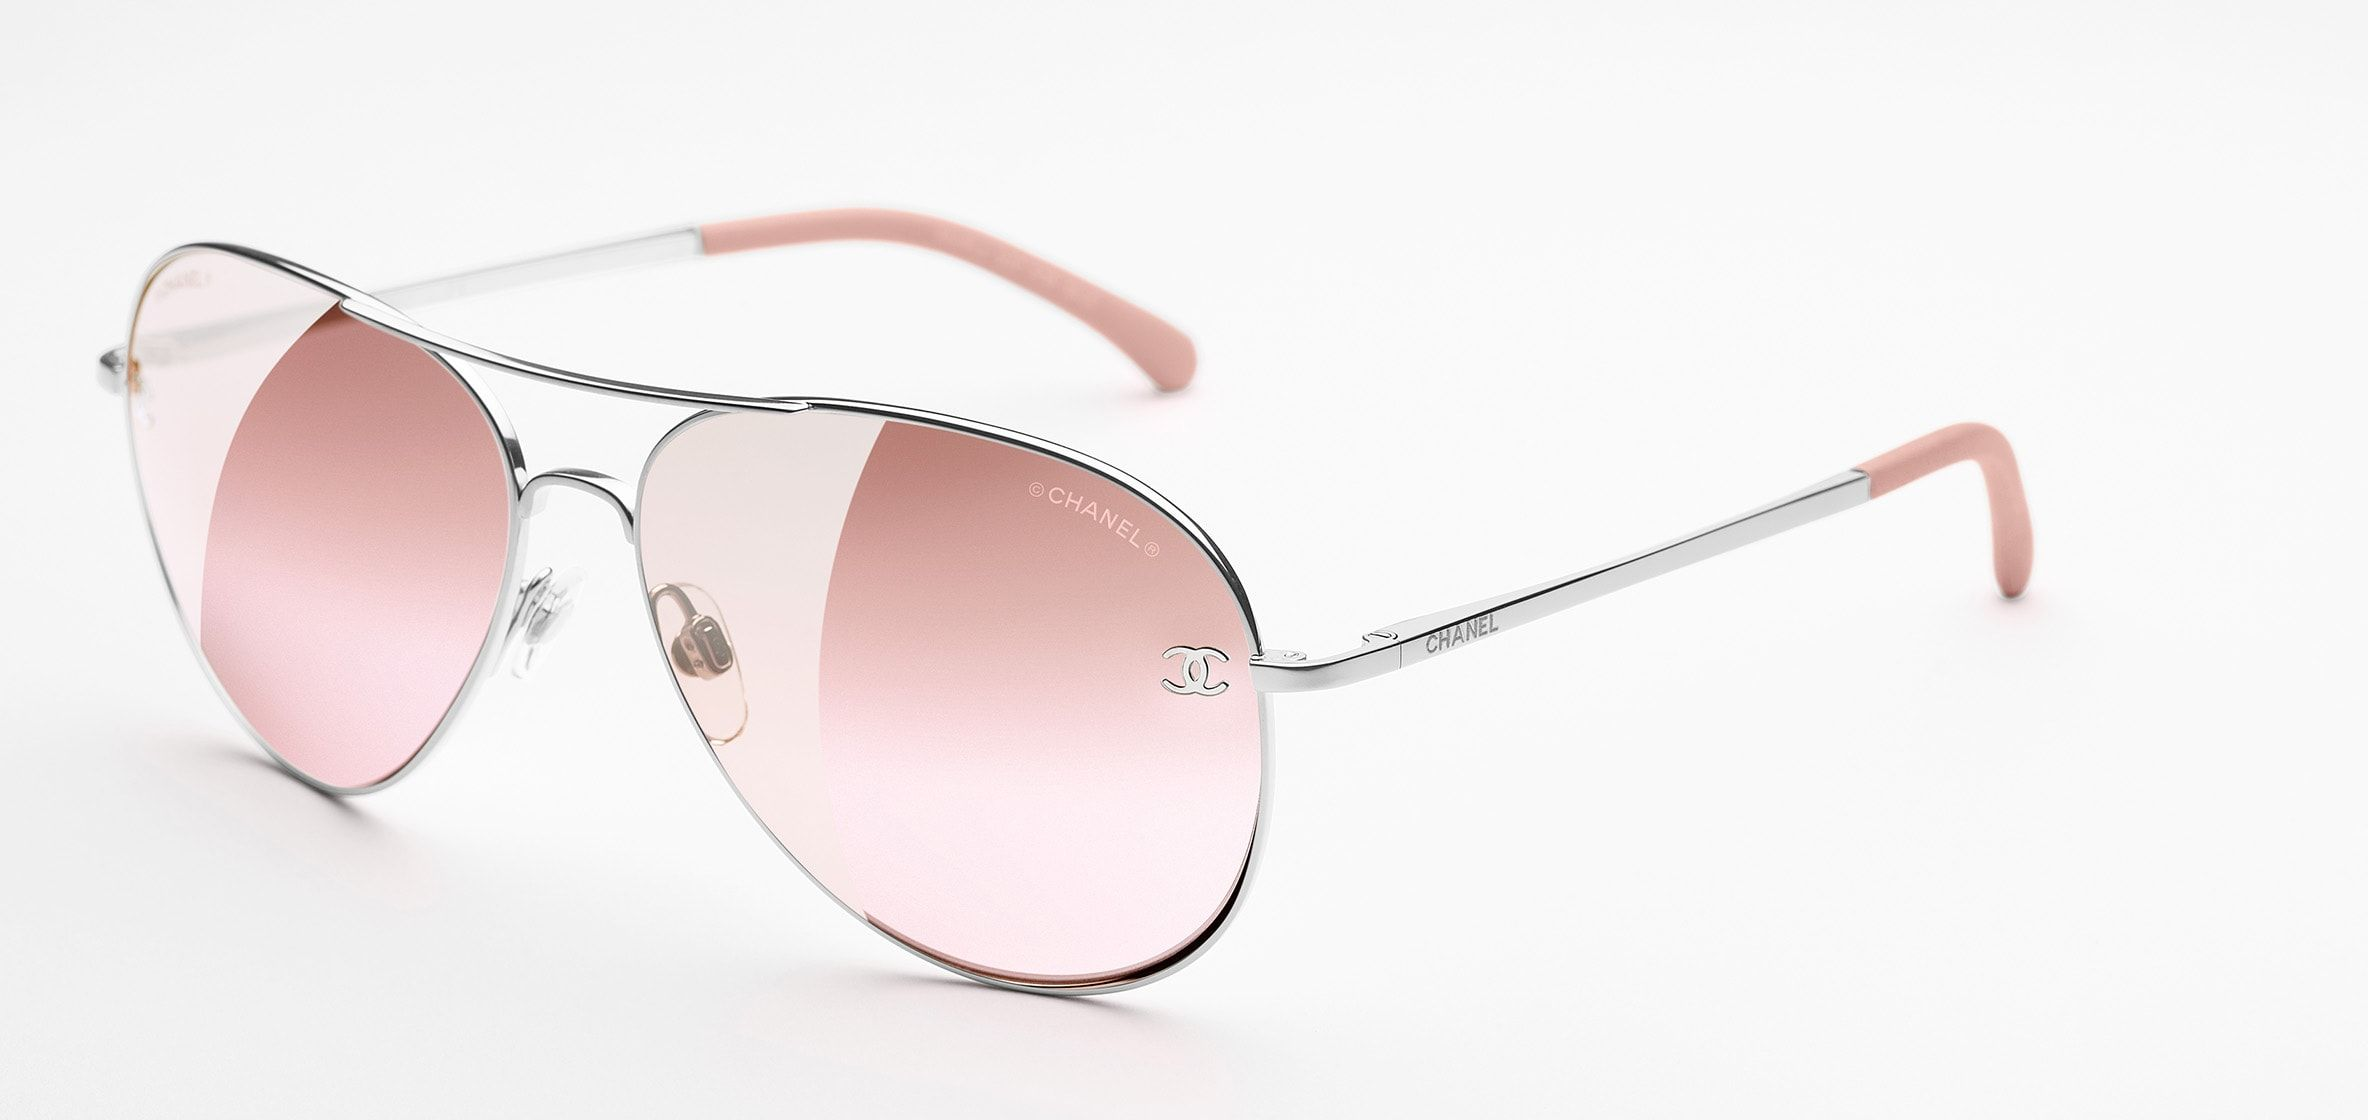 4e1113cd10777 Silver   light pink Pilot Signature Chanel Sunglasses with Pink Mirror  Lenses